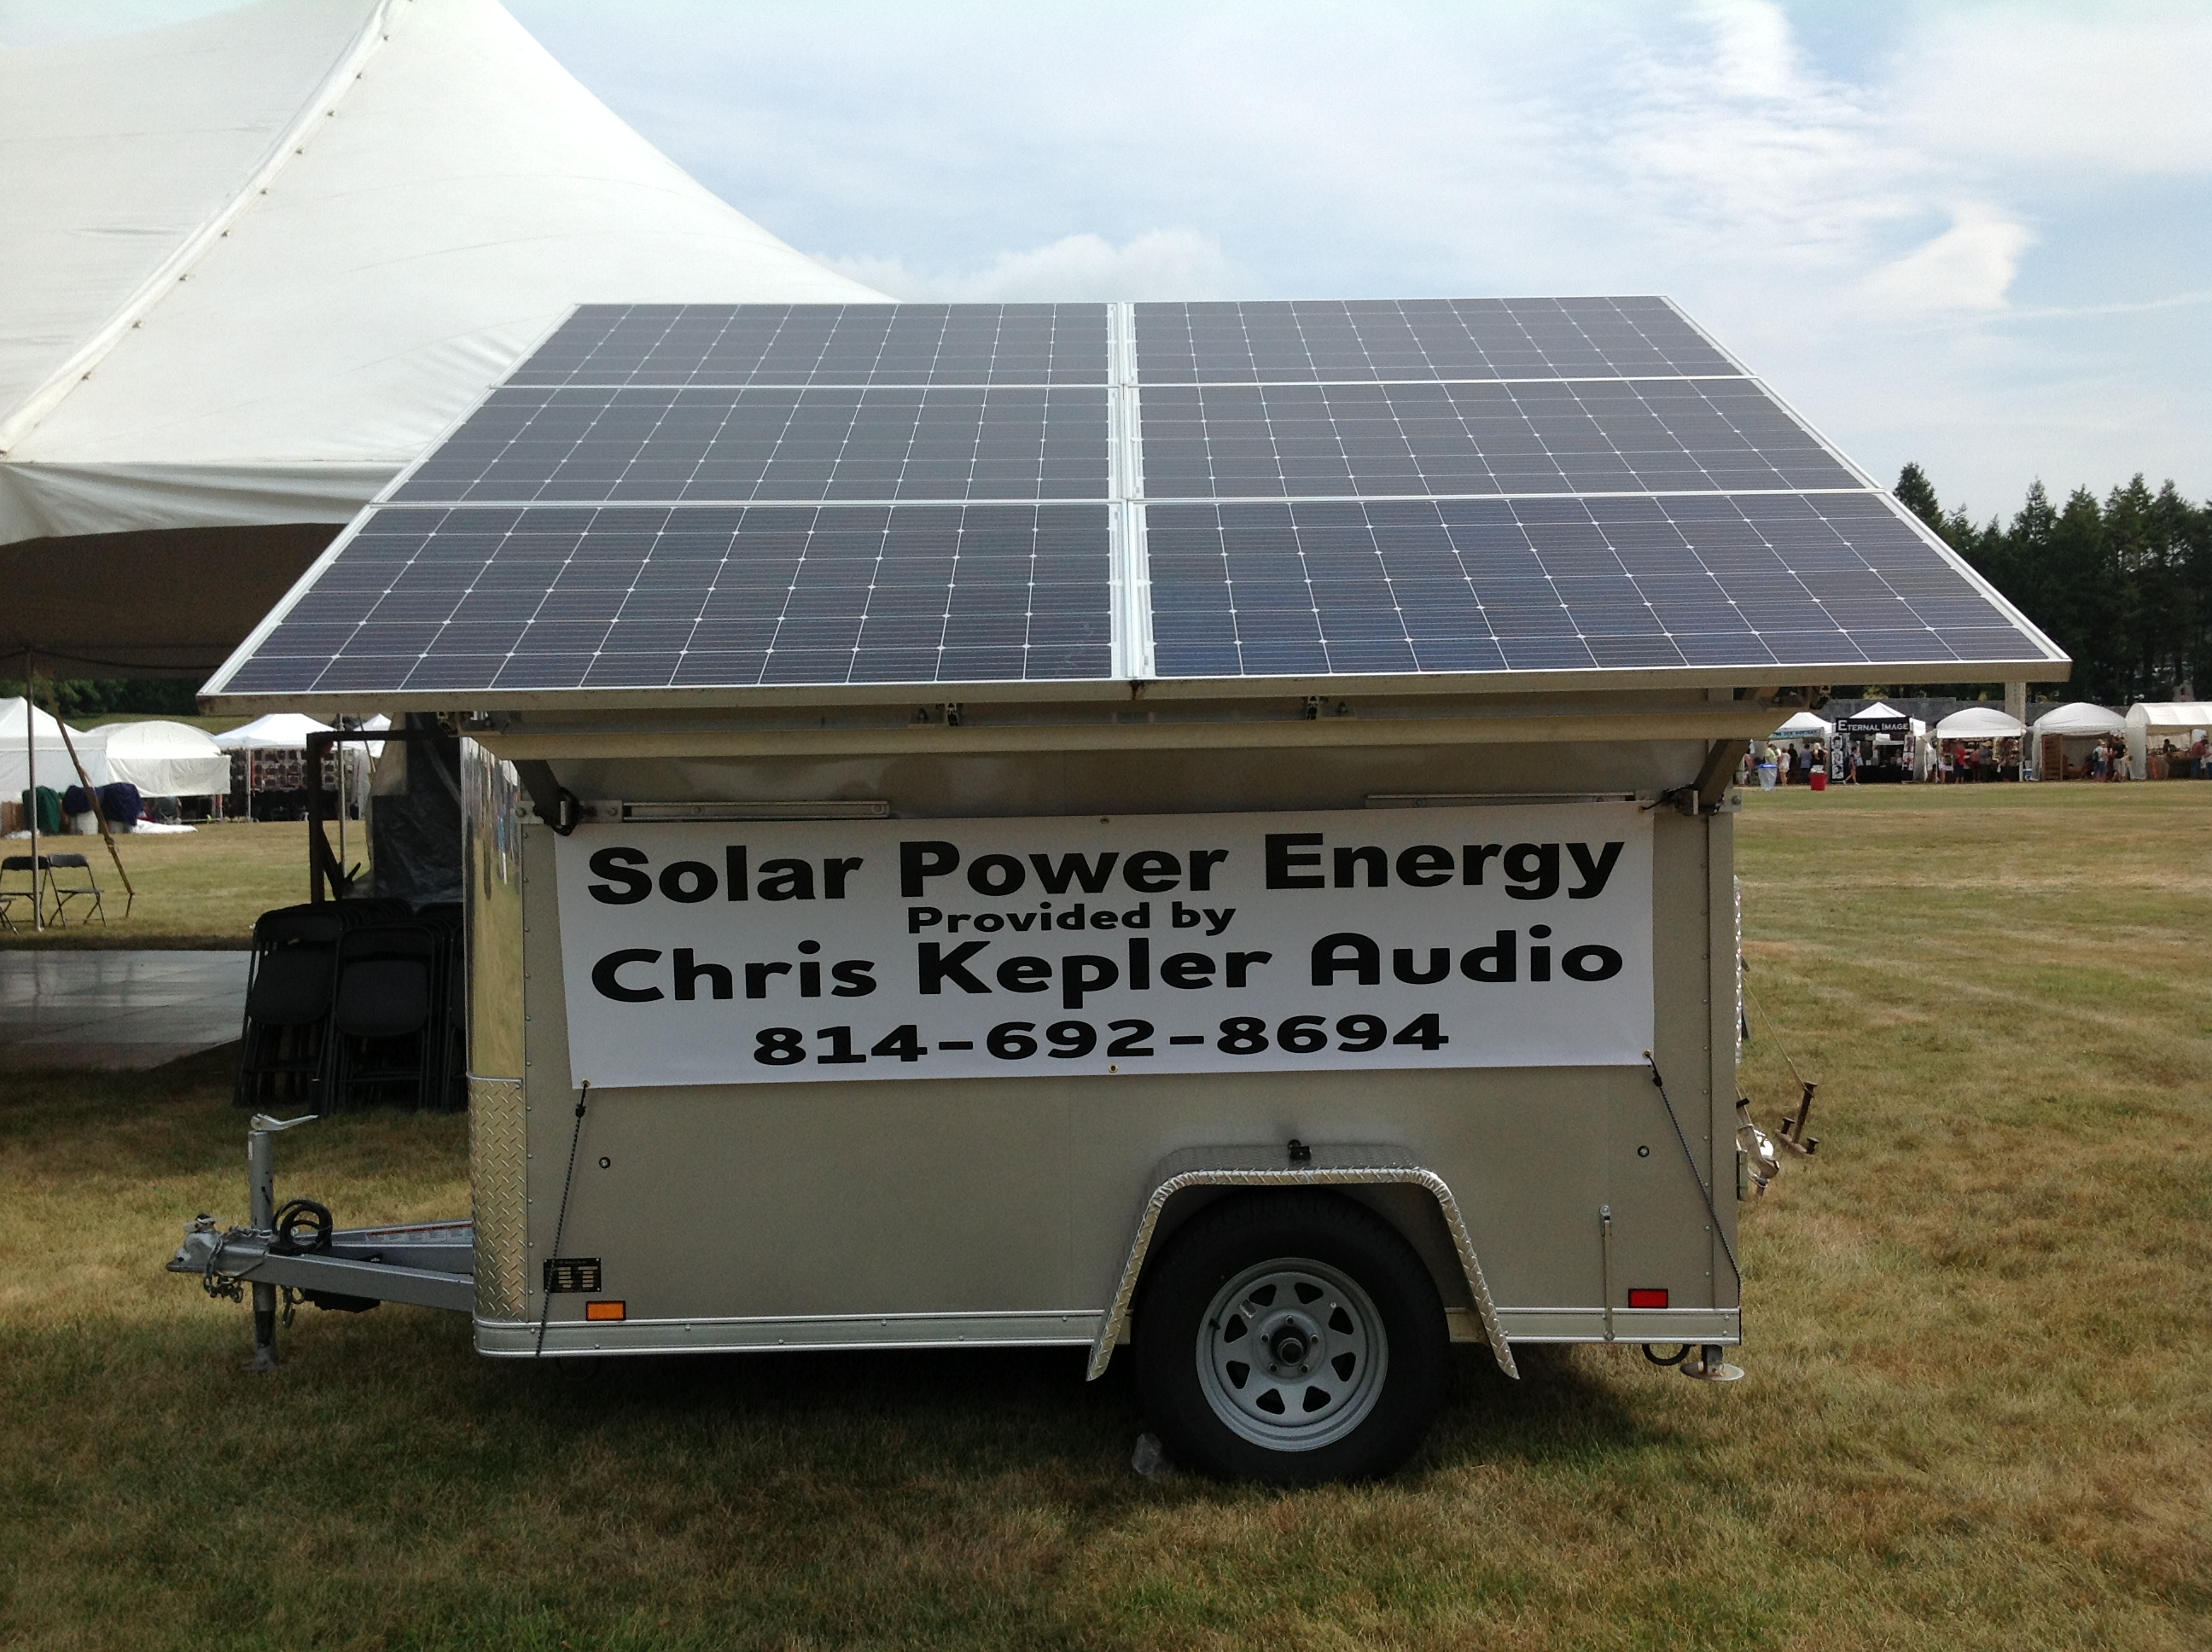 Solar Powered Generator : People's Choice Festival